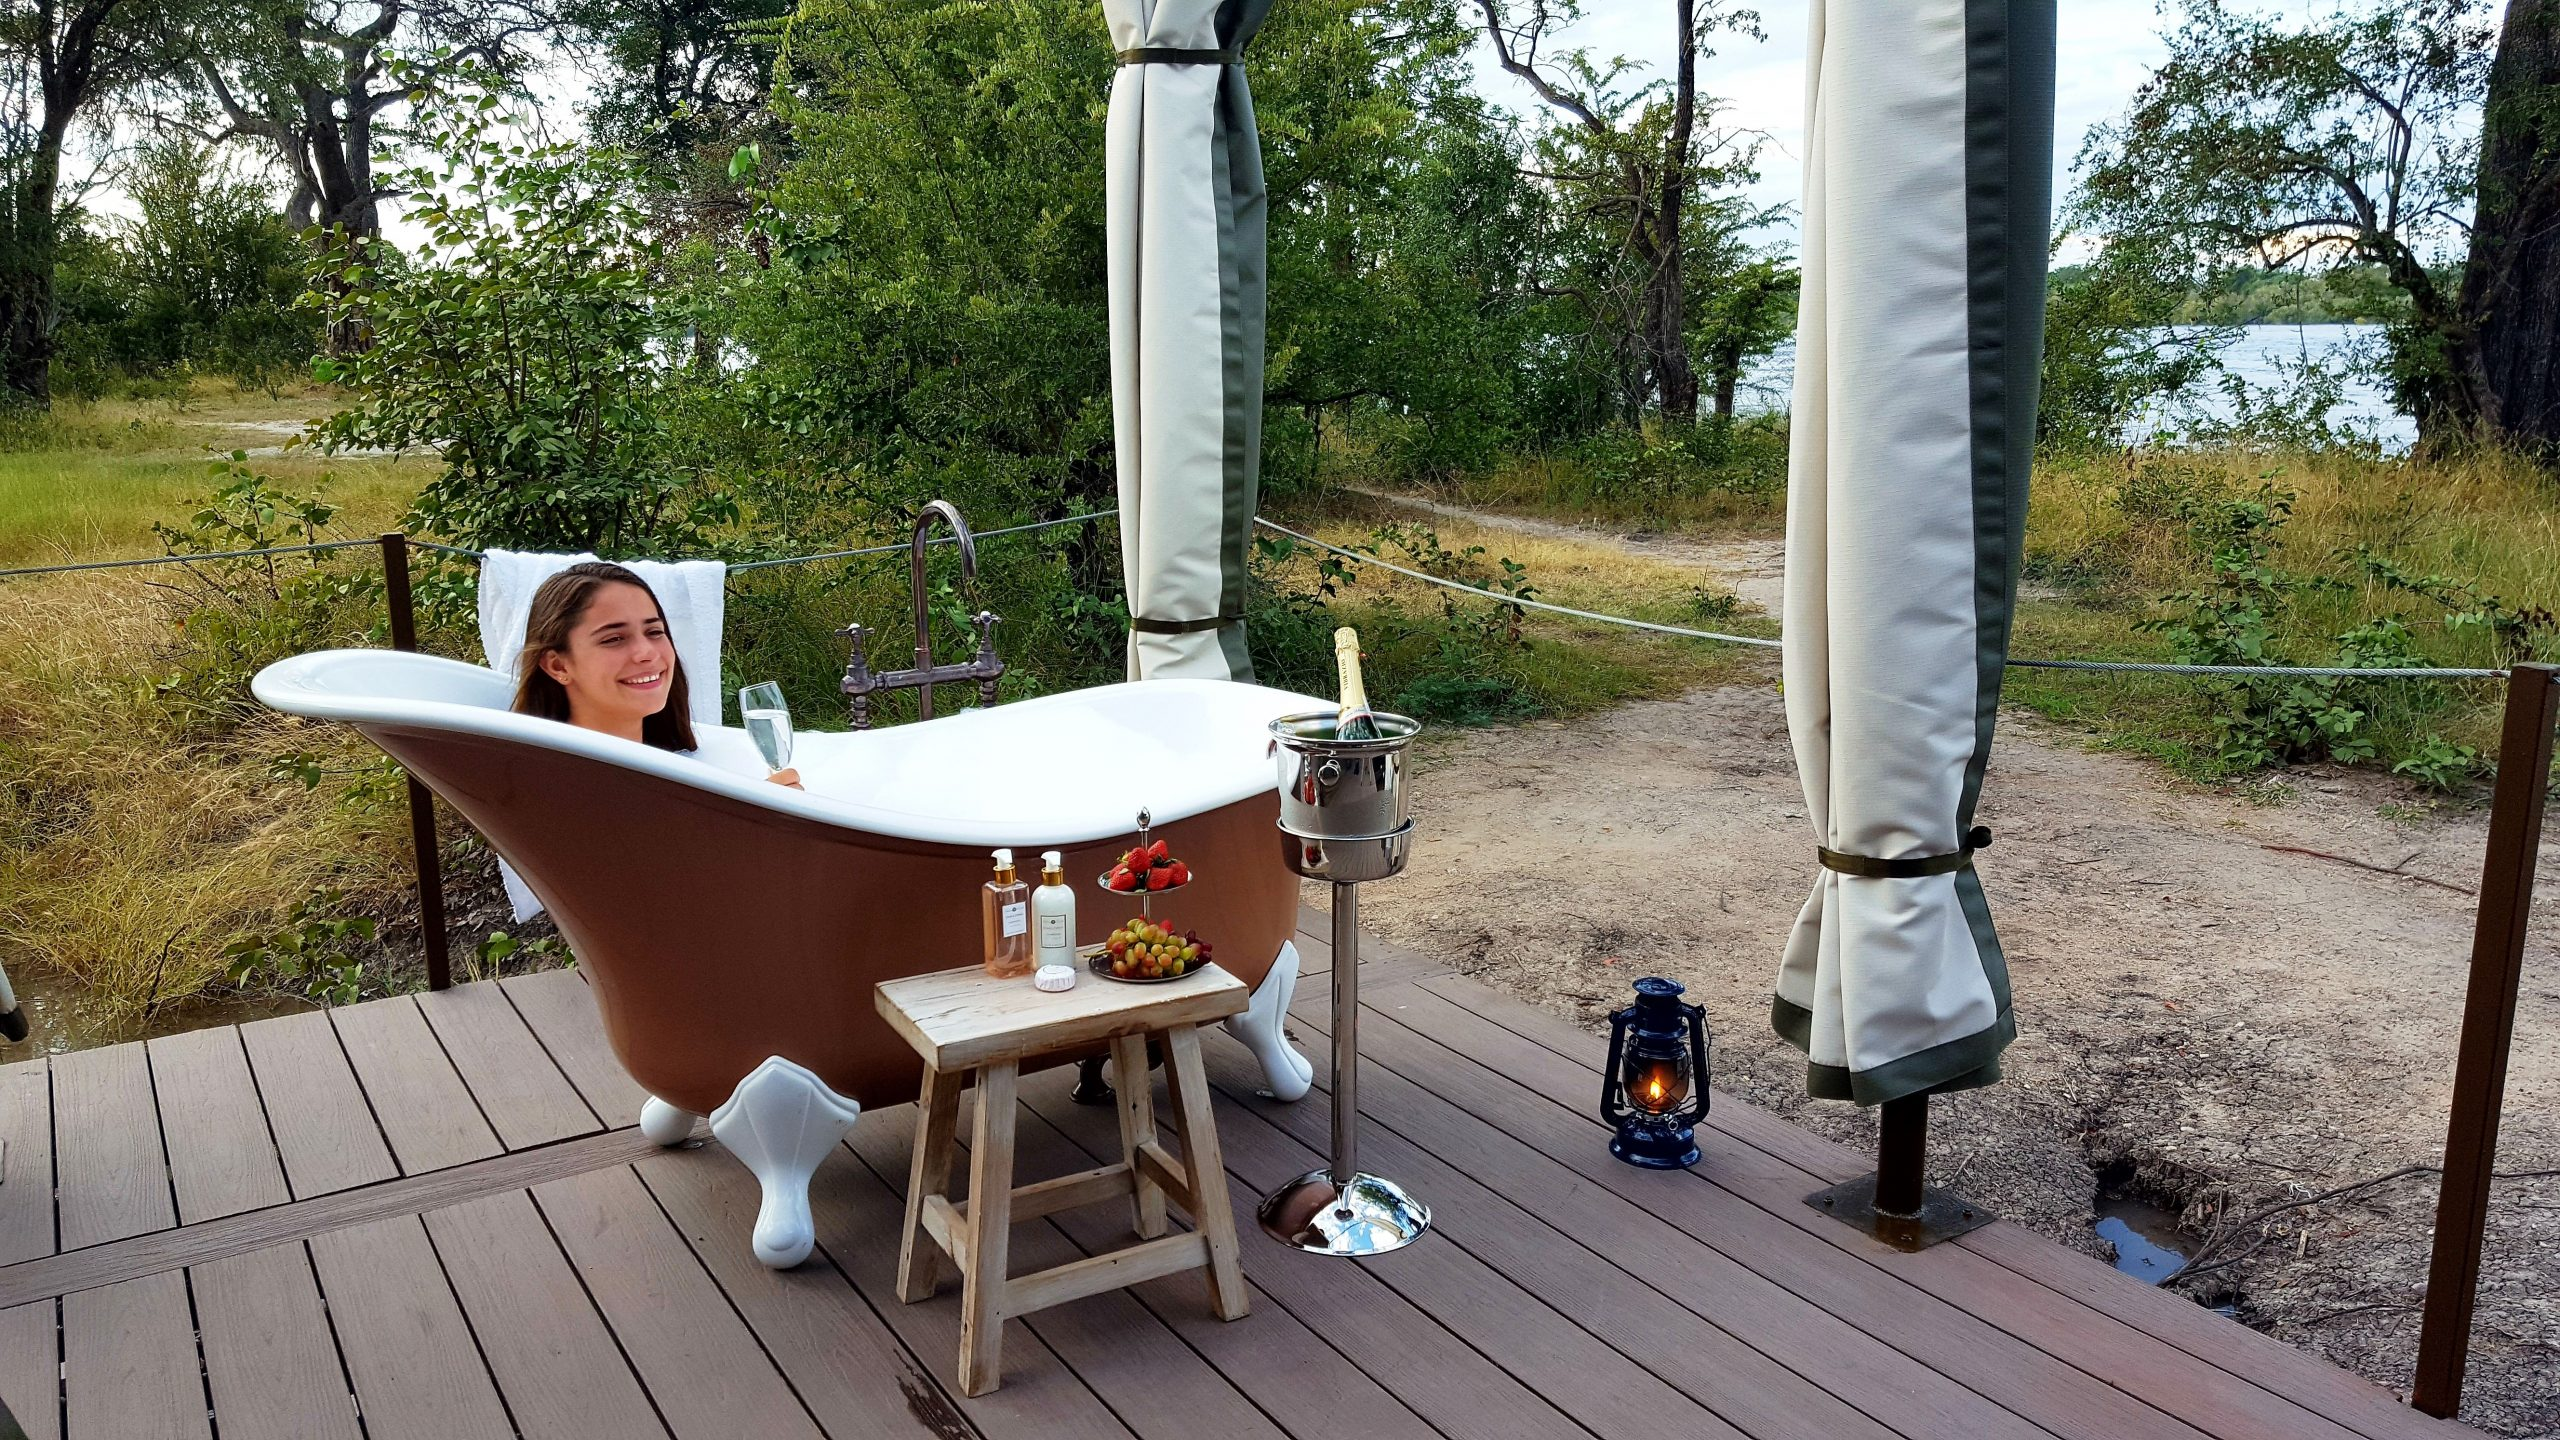 girl drinking champagne in outdoor bubble bath